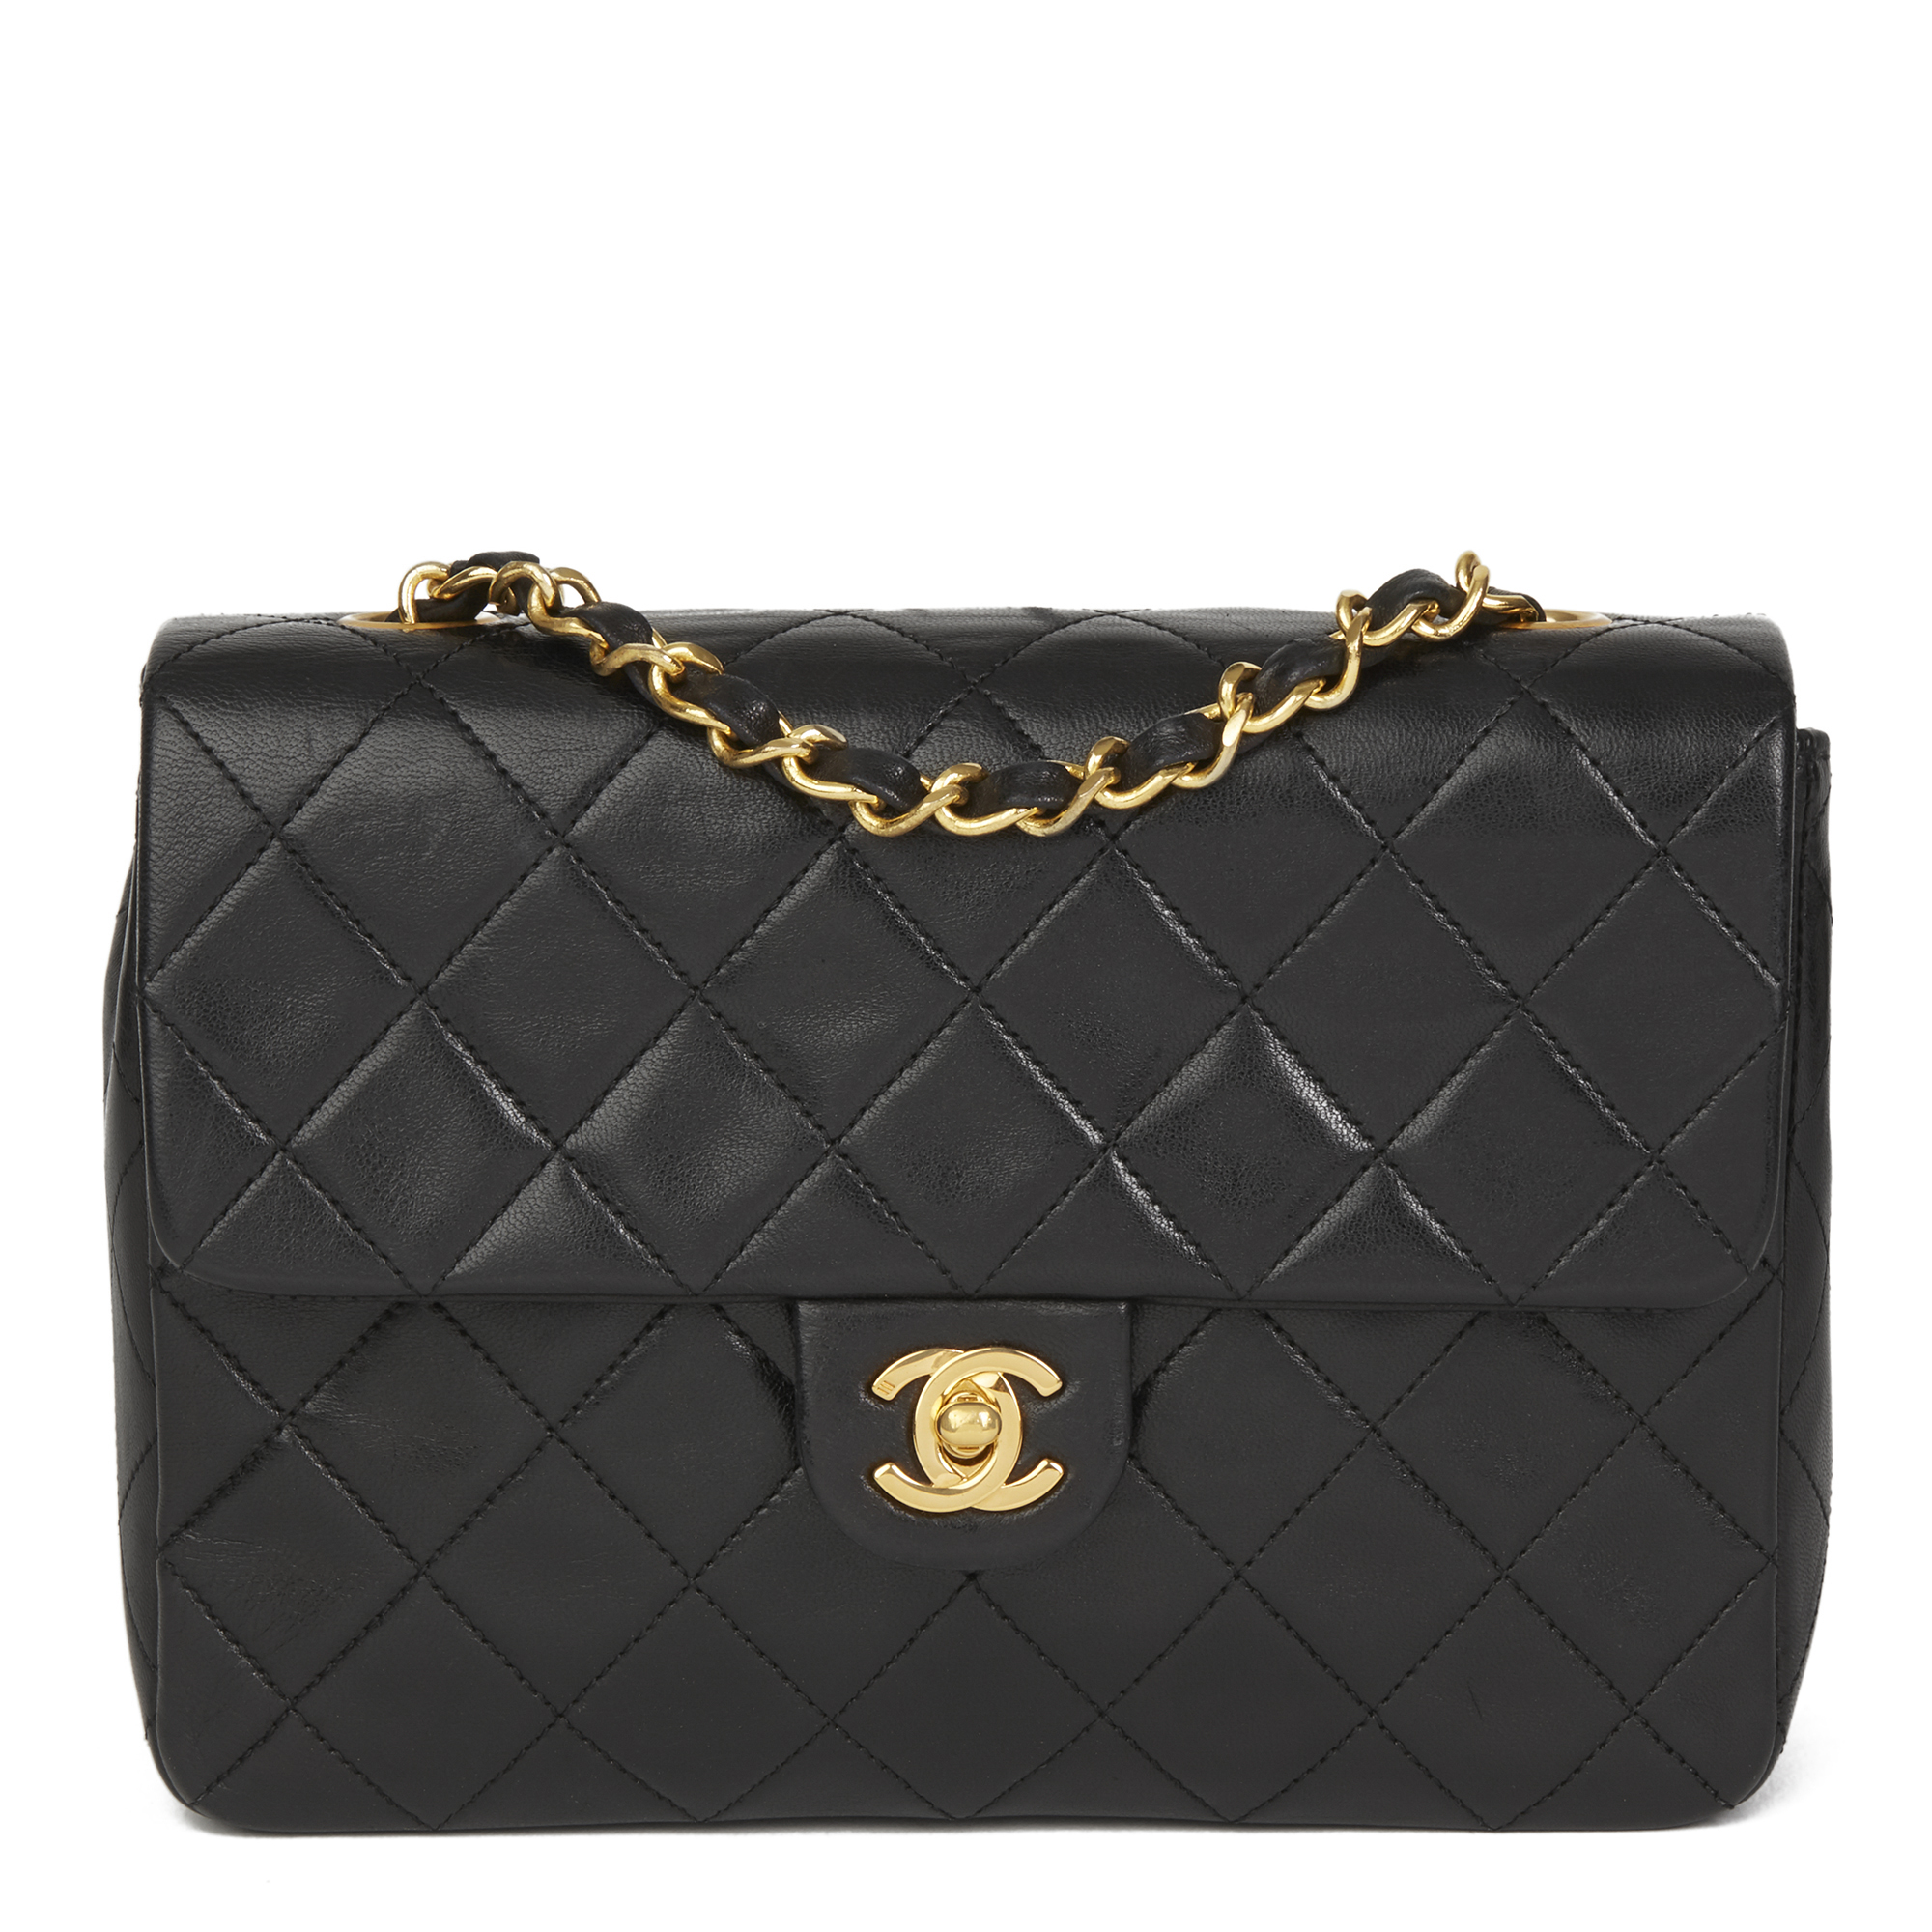 b662f3bc4859 CHANEL BLACK QUILTED LAMBSKIN VINTAGE MINI FLAP BAG HB2633